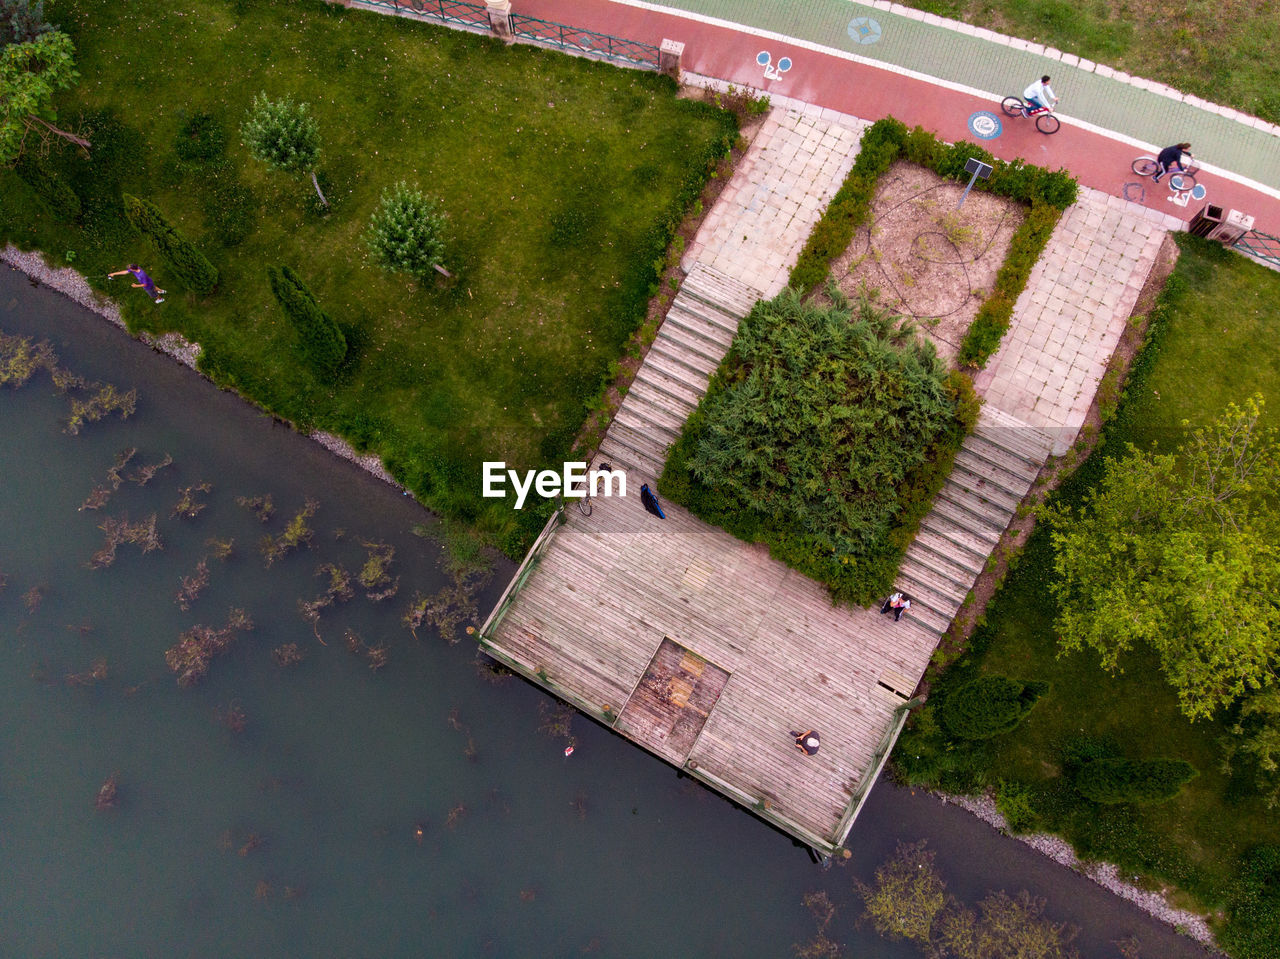 plant, high angle view, water, green color, day, nature, growth, no people, tranquility, grass, outdoors, beauty in nature, wood - material, lake, scenics - nature, architecture, land, tranquil scene, footpath, swimming pool